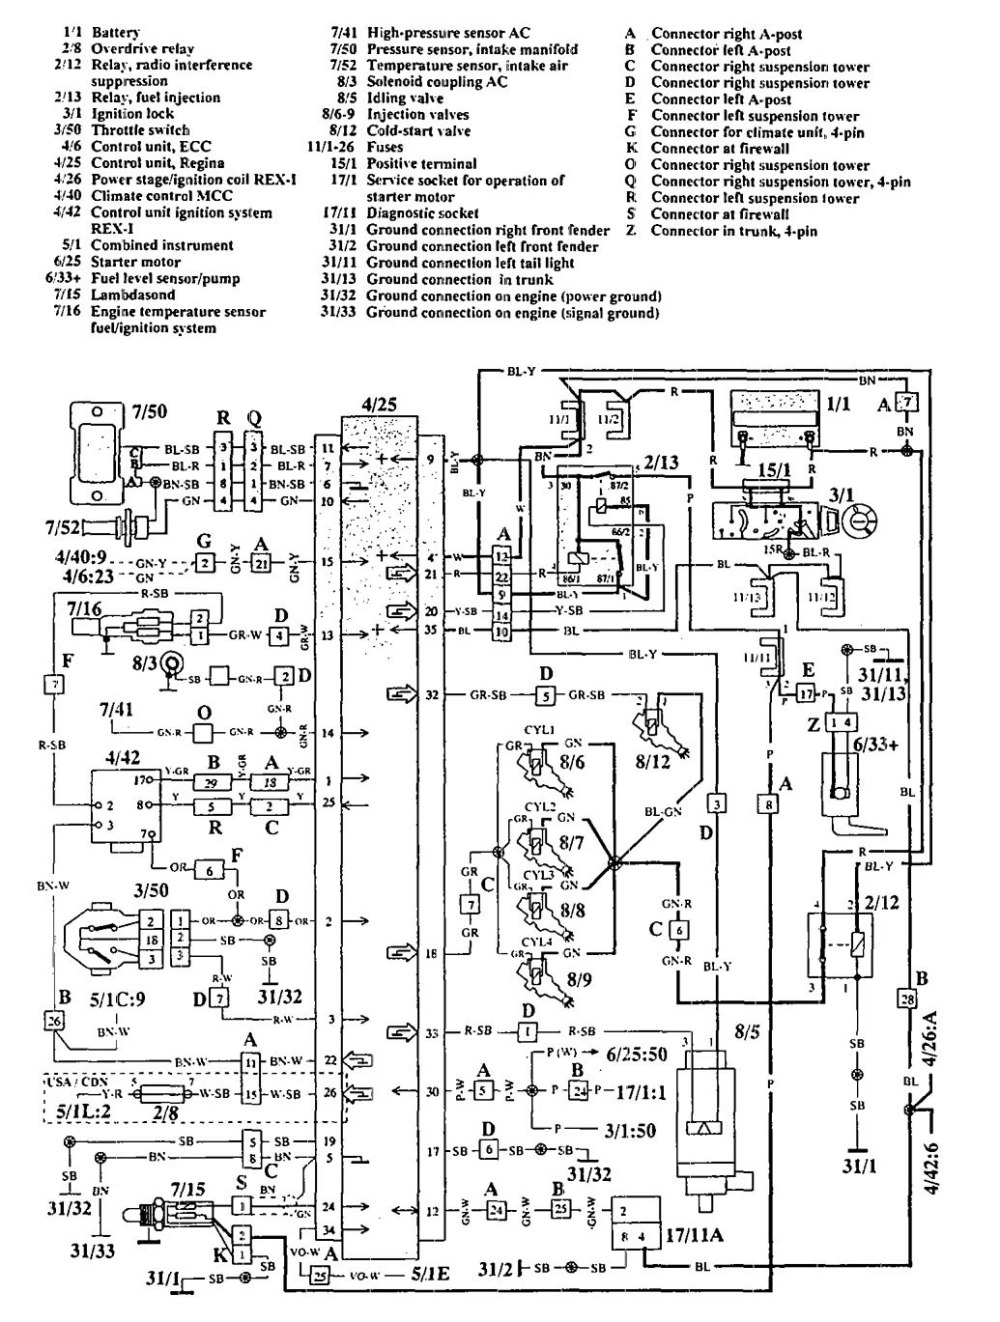 medium resolution of 1992 volvo 940 wiring diagram data wiring diagram schema rh 26 danielmeidl de 1995 volvo 940 radio wiring diagram volvo 940 stereo wiring diagram